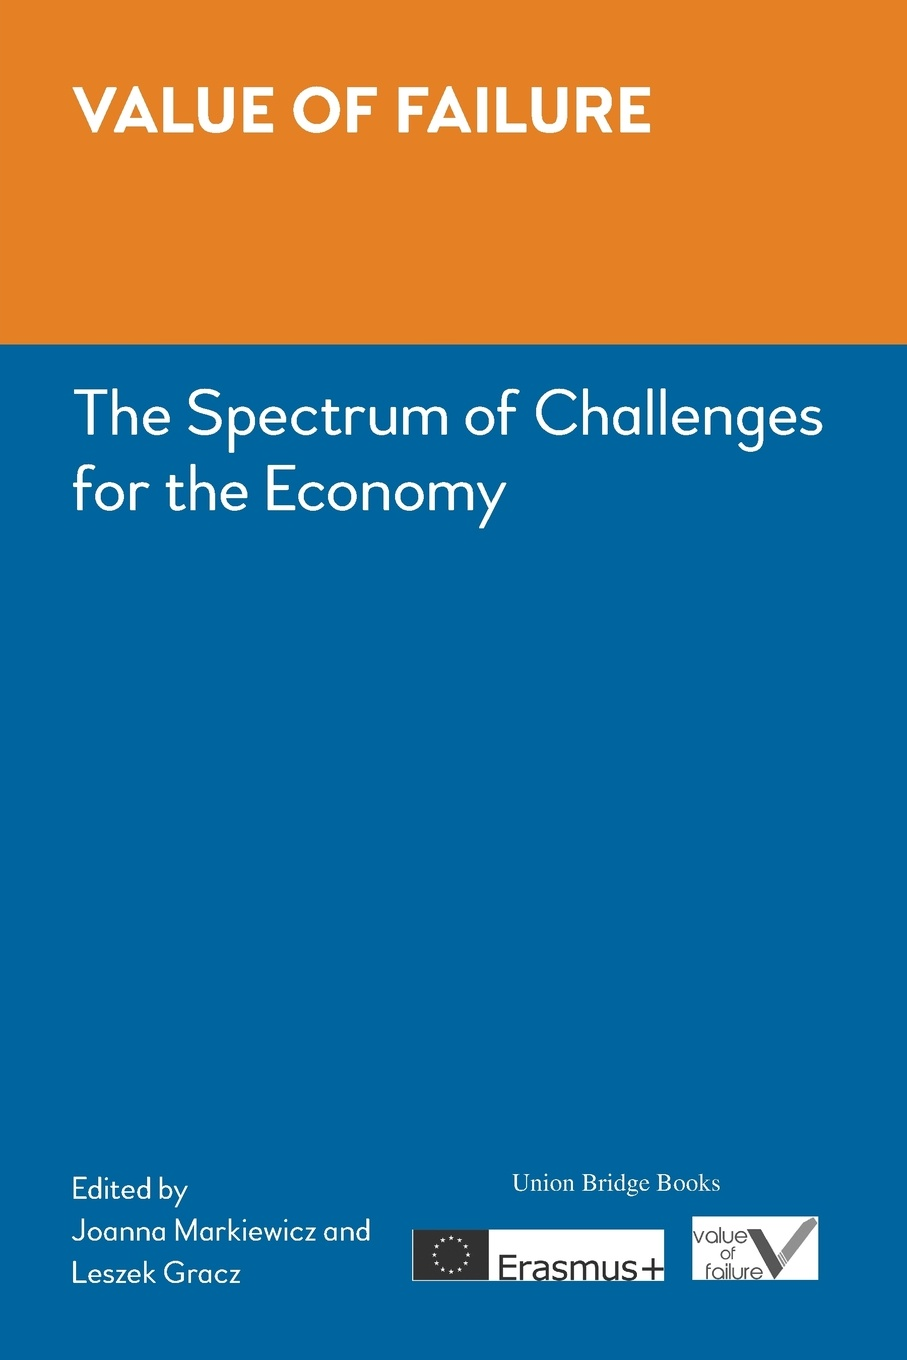 Value of Failure. The Spectrum of Challenges for the Economy economic and biological aspects of vaccinations